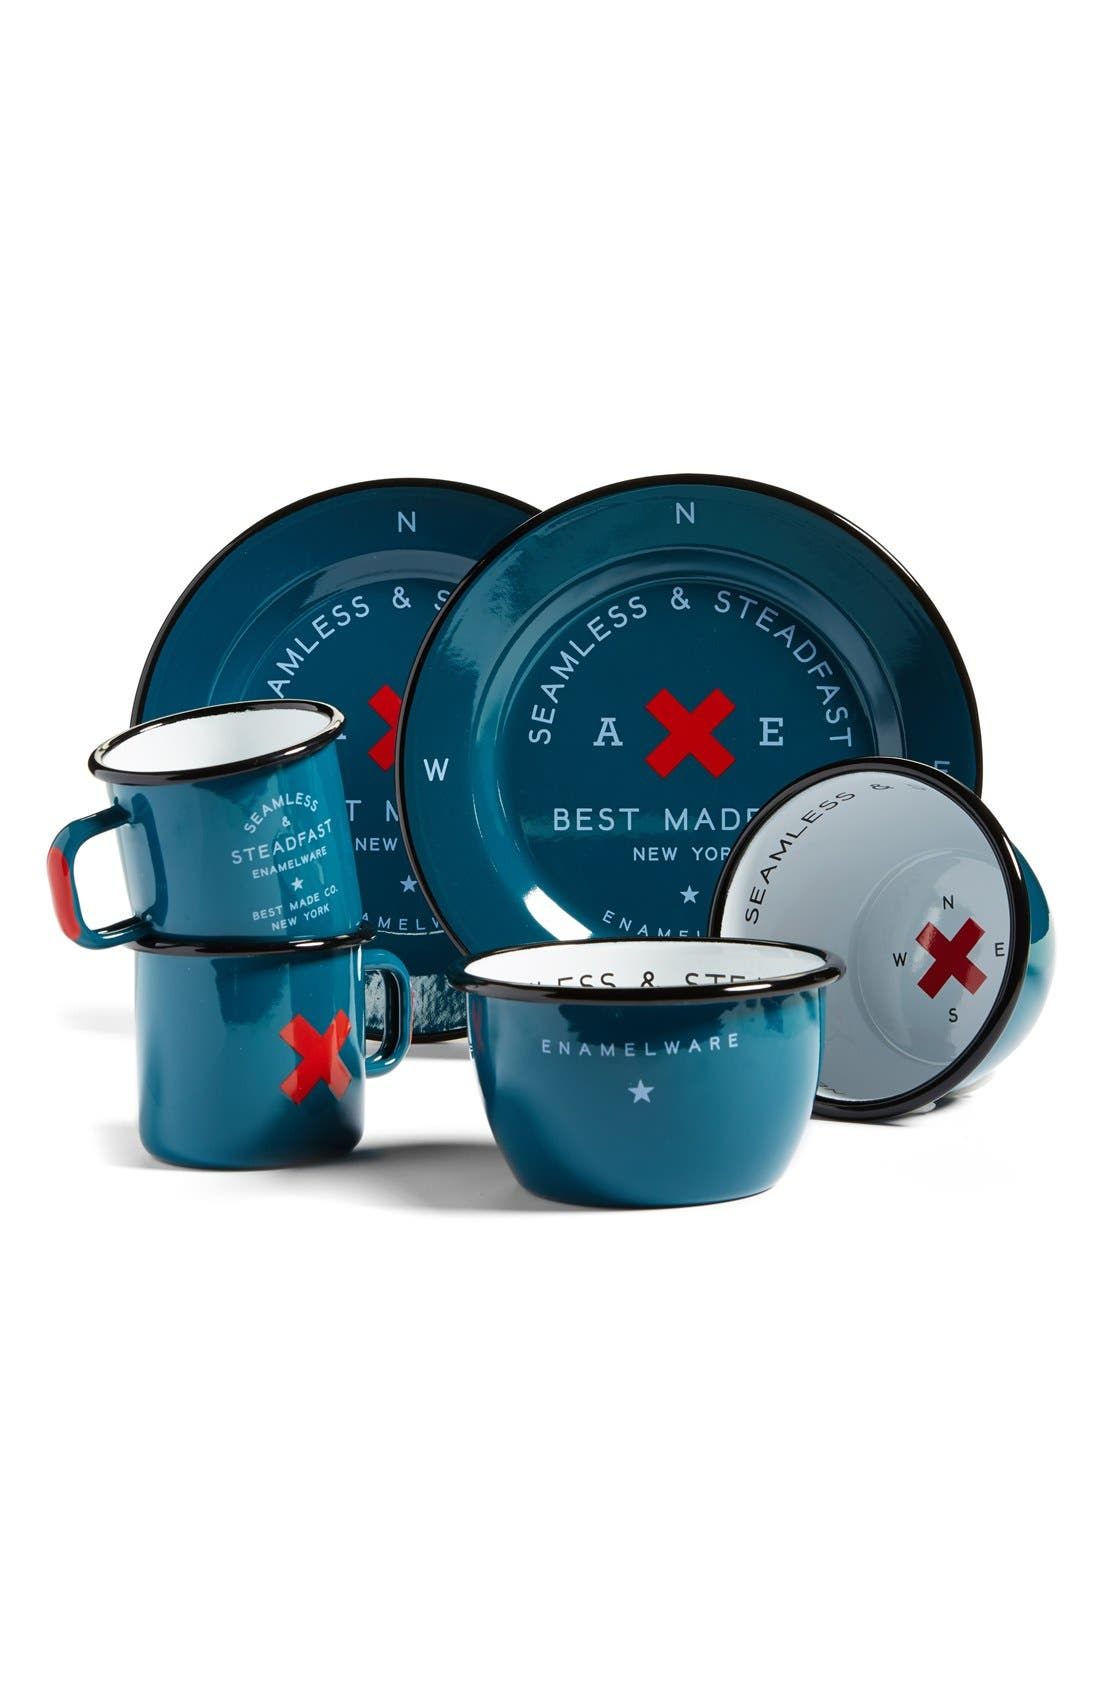 BEST MADE CO. Best Made Co 'Seamless & Steadfast' Enamelware Cups, Bowls & Plates, Main, color, 400